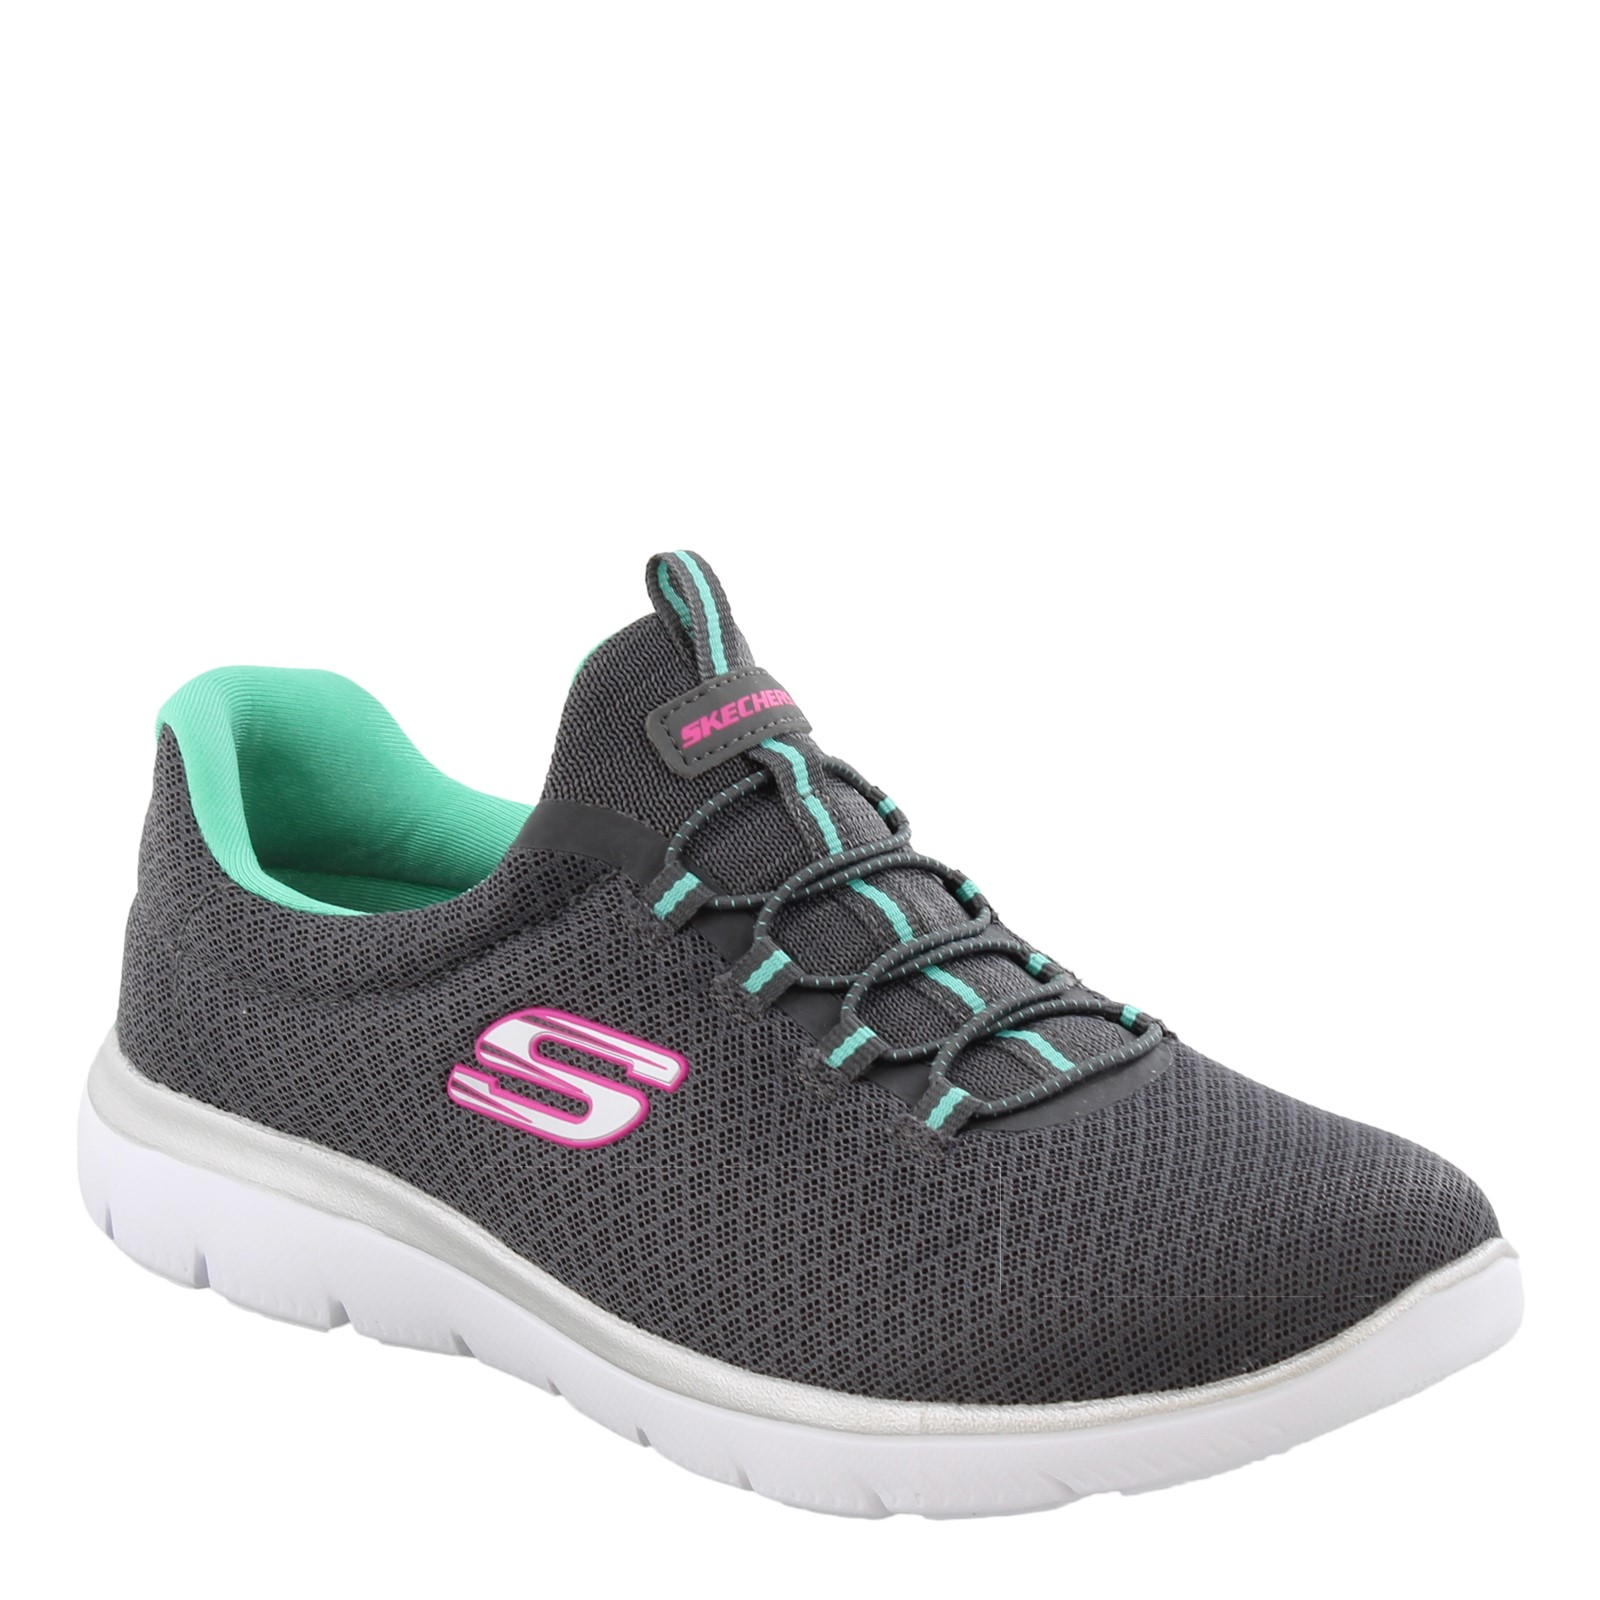 Women's Skechers, Summits Slip on - Wide Width